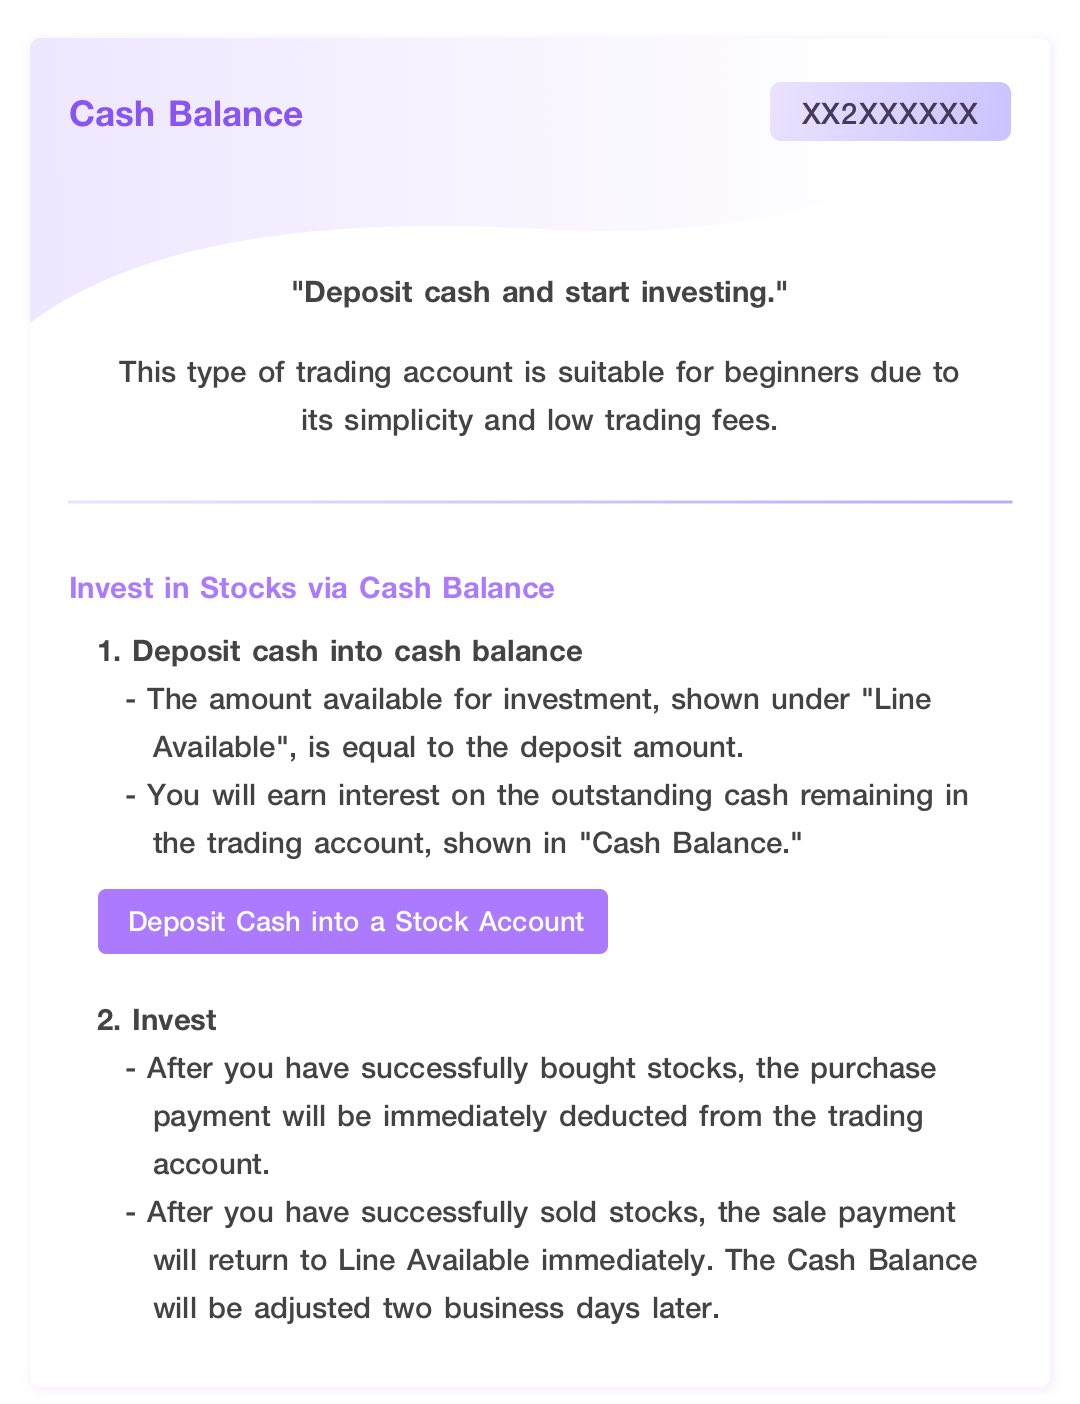 Cash Balance. Deposit cash and start investing. This type of trading account is suitable for beginners due to its simplicity and low trading fees.